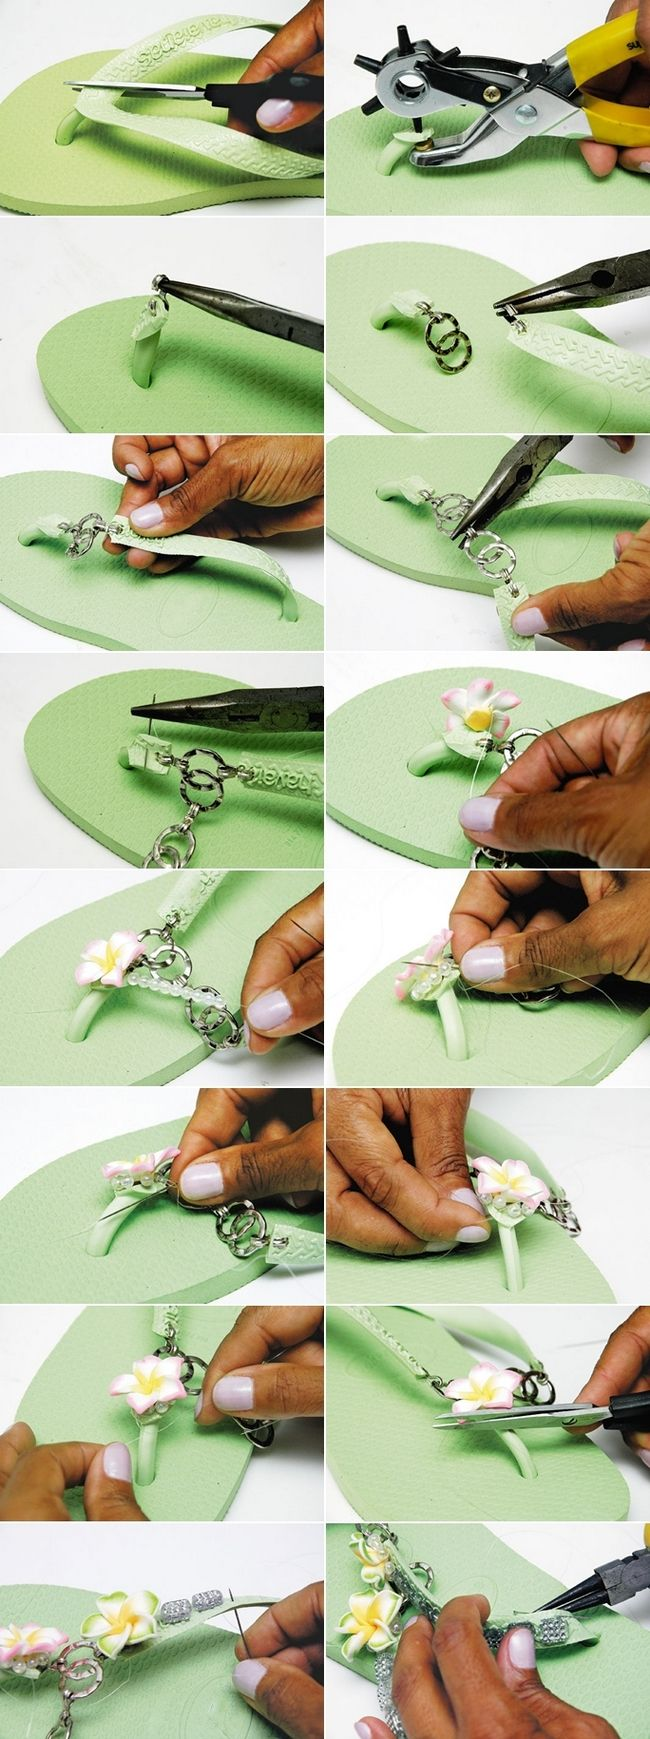 """What an awesome & inexpensive project to keep my """"bored"""" girl busy"""